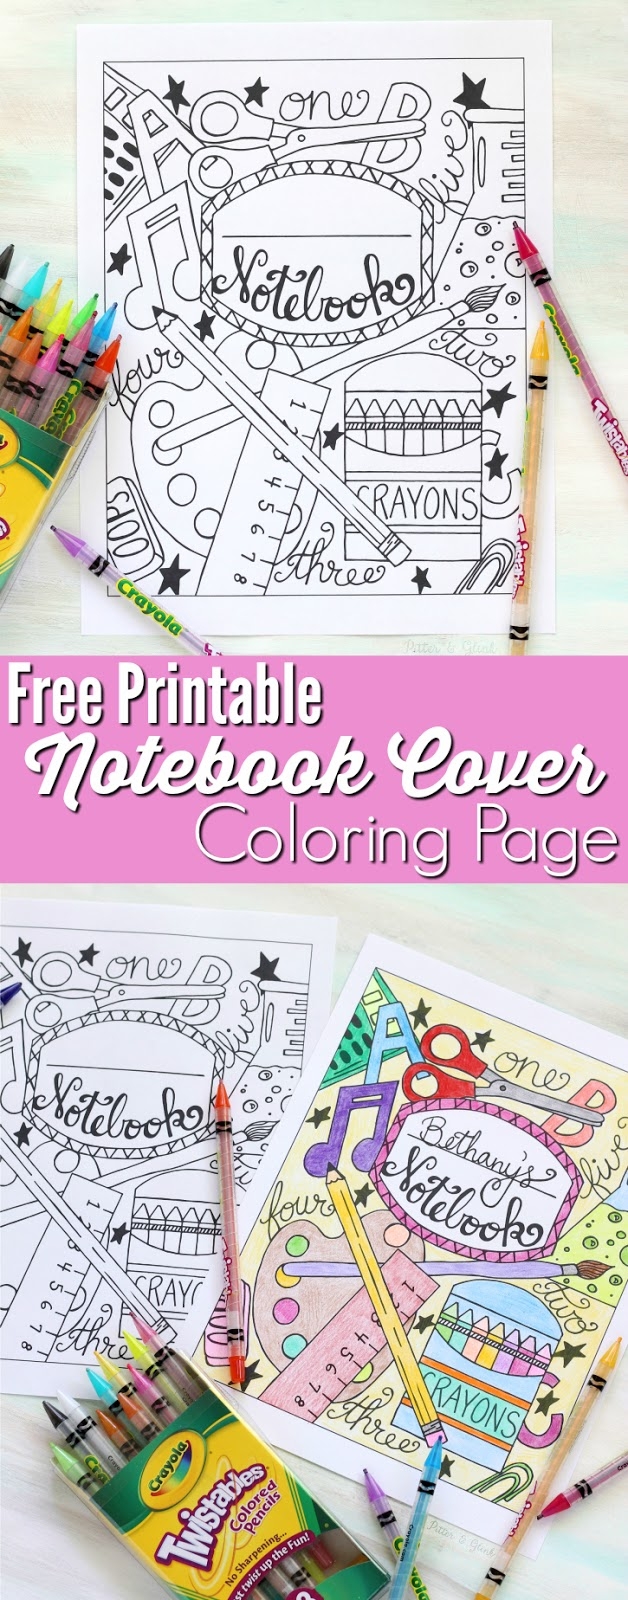 Book Cover Printable Zip : Back to school notebook cover printable coloring page